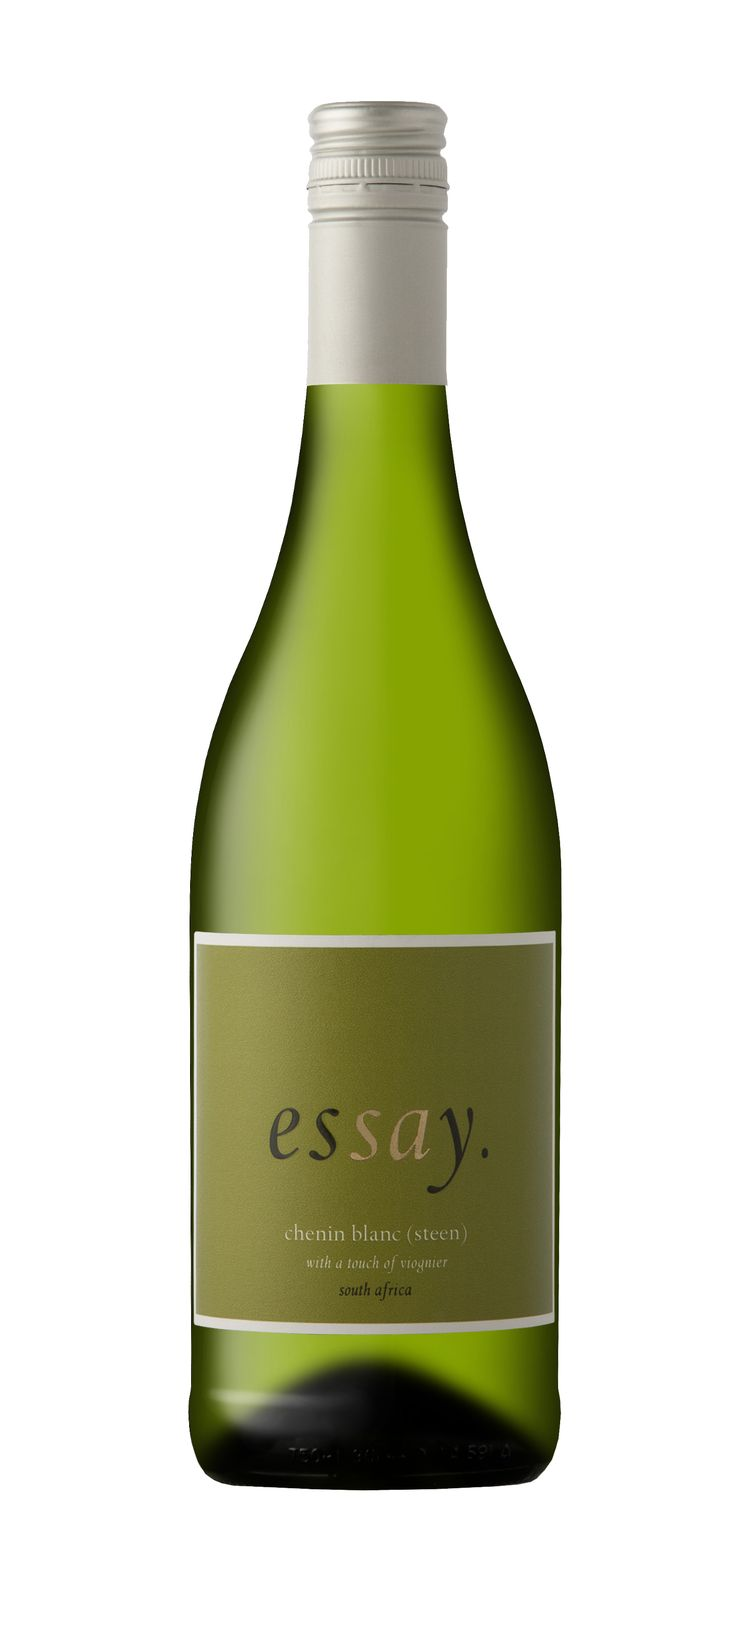 essay chenin blanc 2011 Indaba chenin blanc – a steal at $7 2011-indaba-chenin-blanc crisp and  clean 100% chenin blanc from western cape, south africa srp of $10 and.